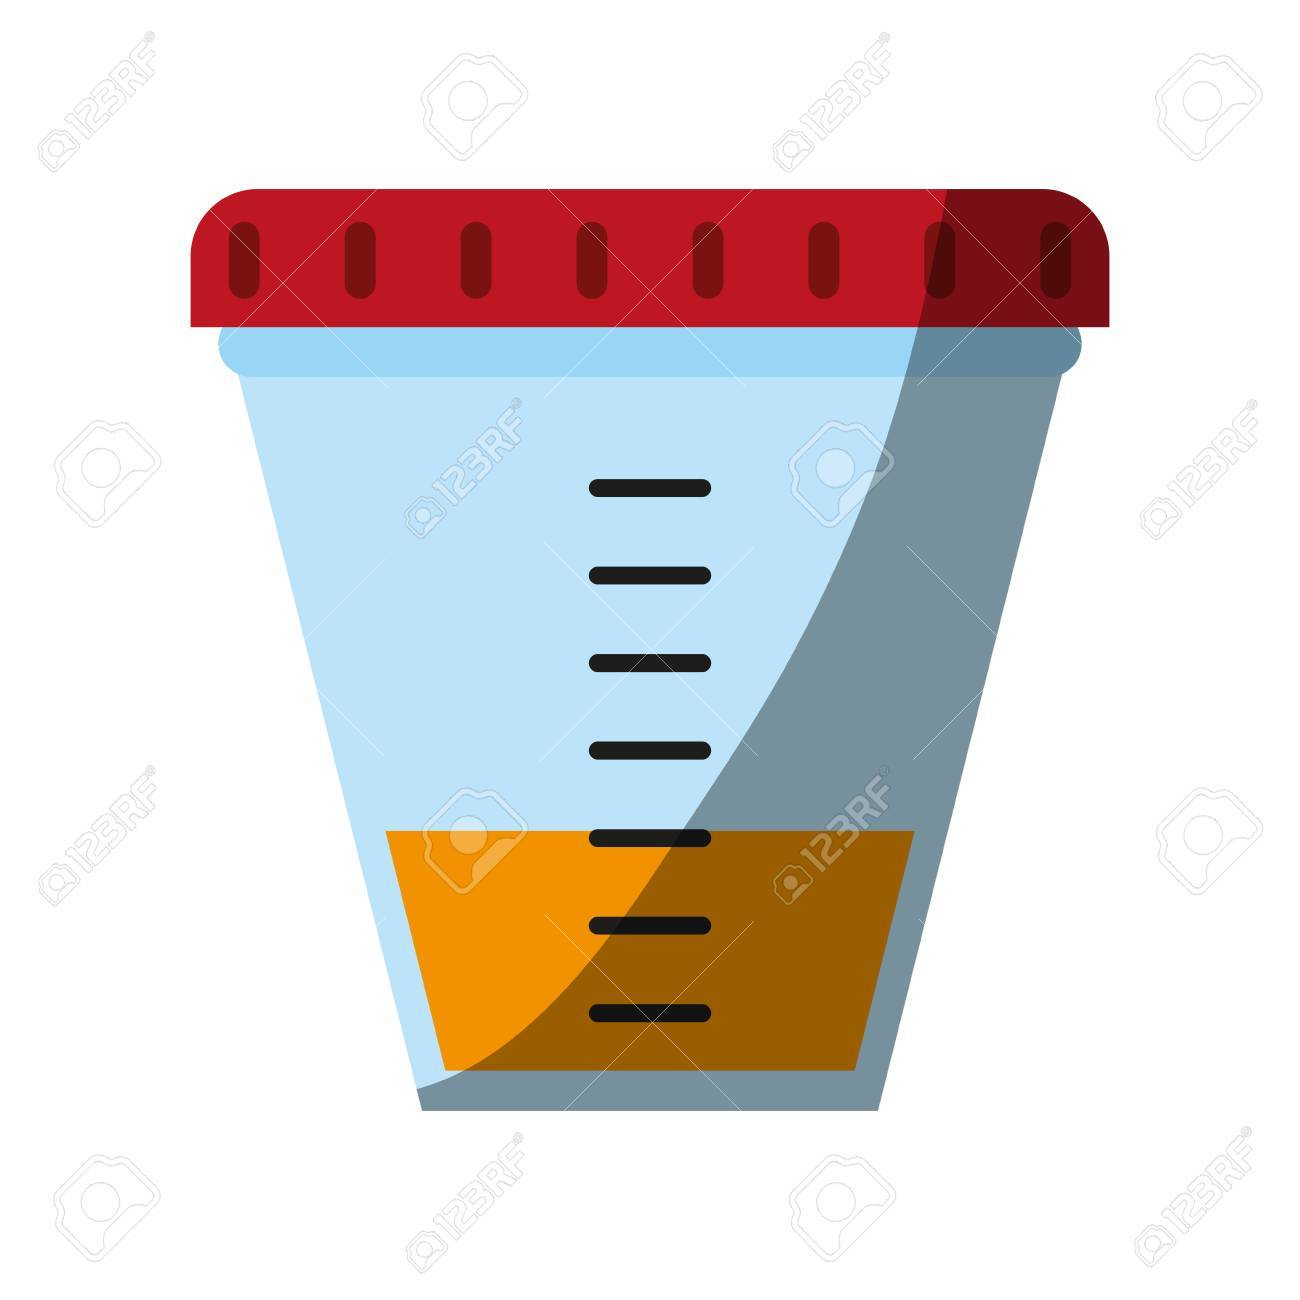 urine sample cup healthcare related icon image vector illustration design stock vector 84044825